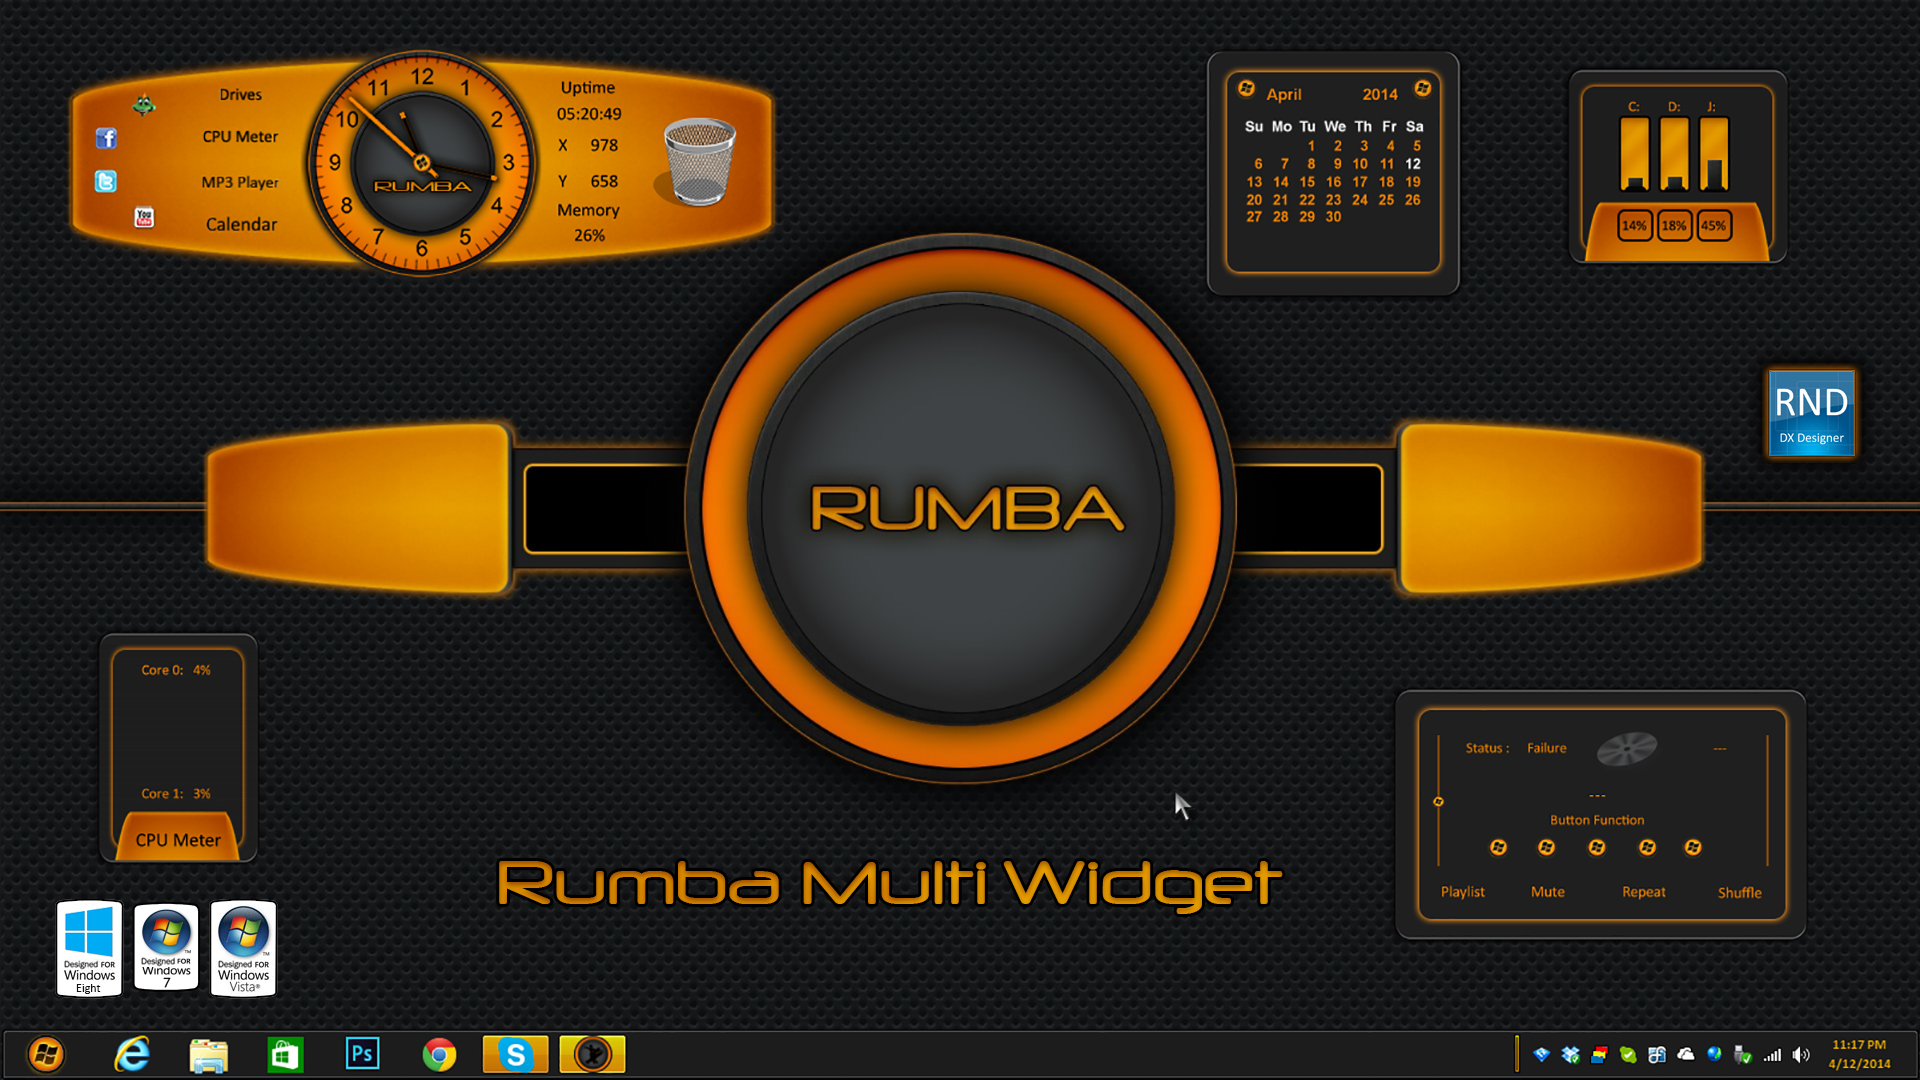 Rumba Multi Widget